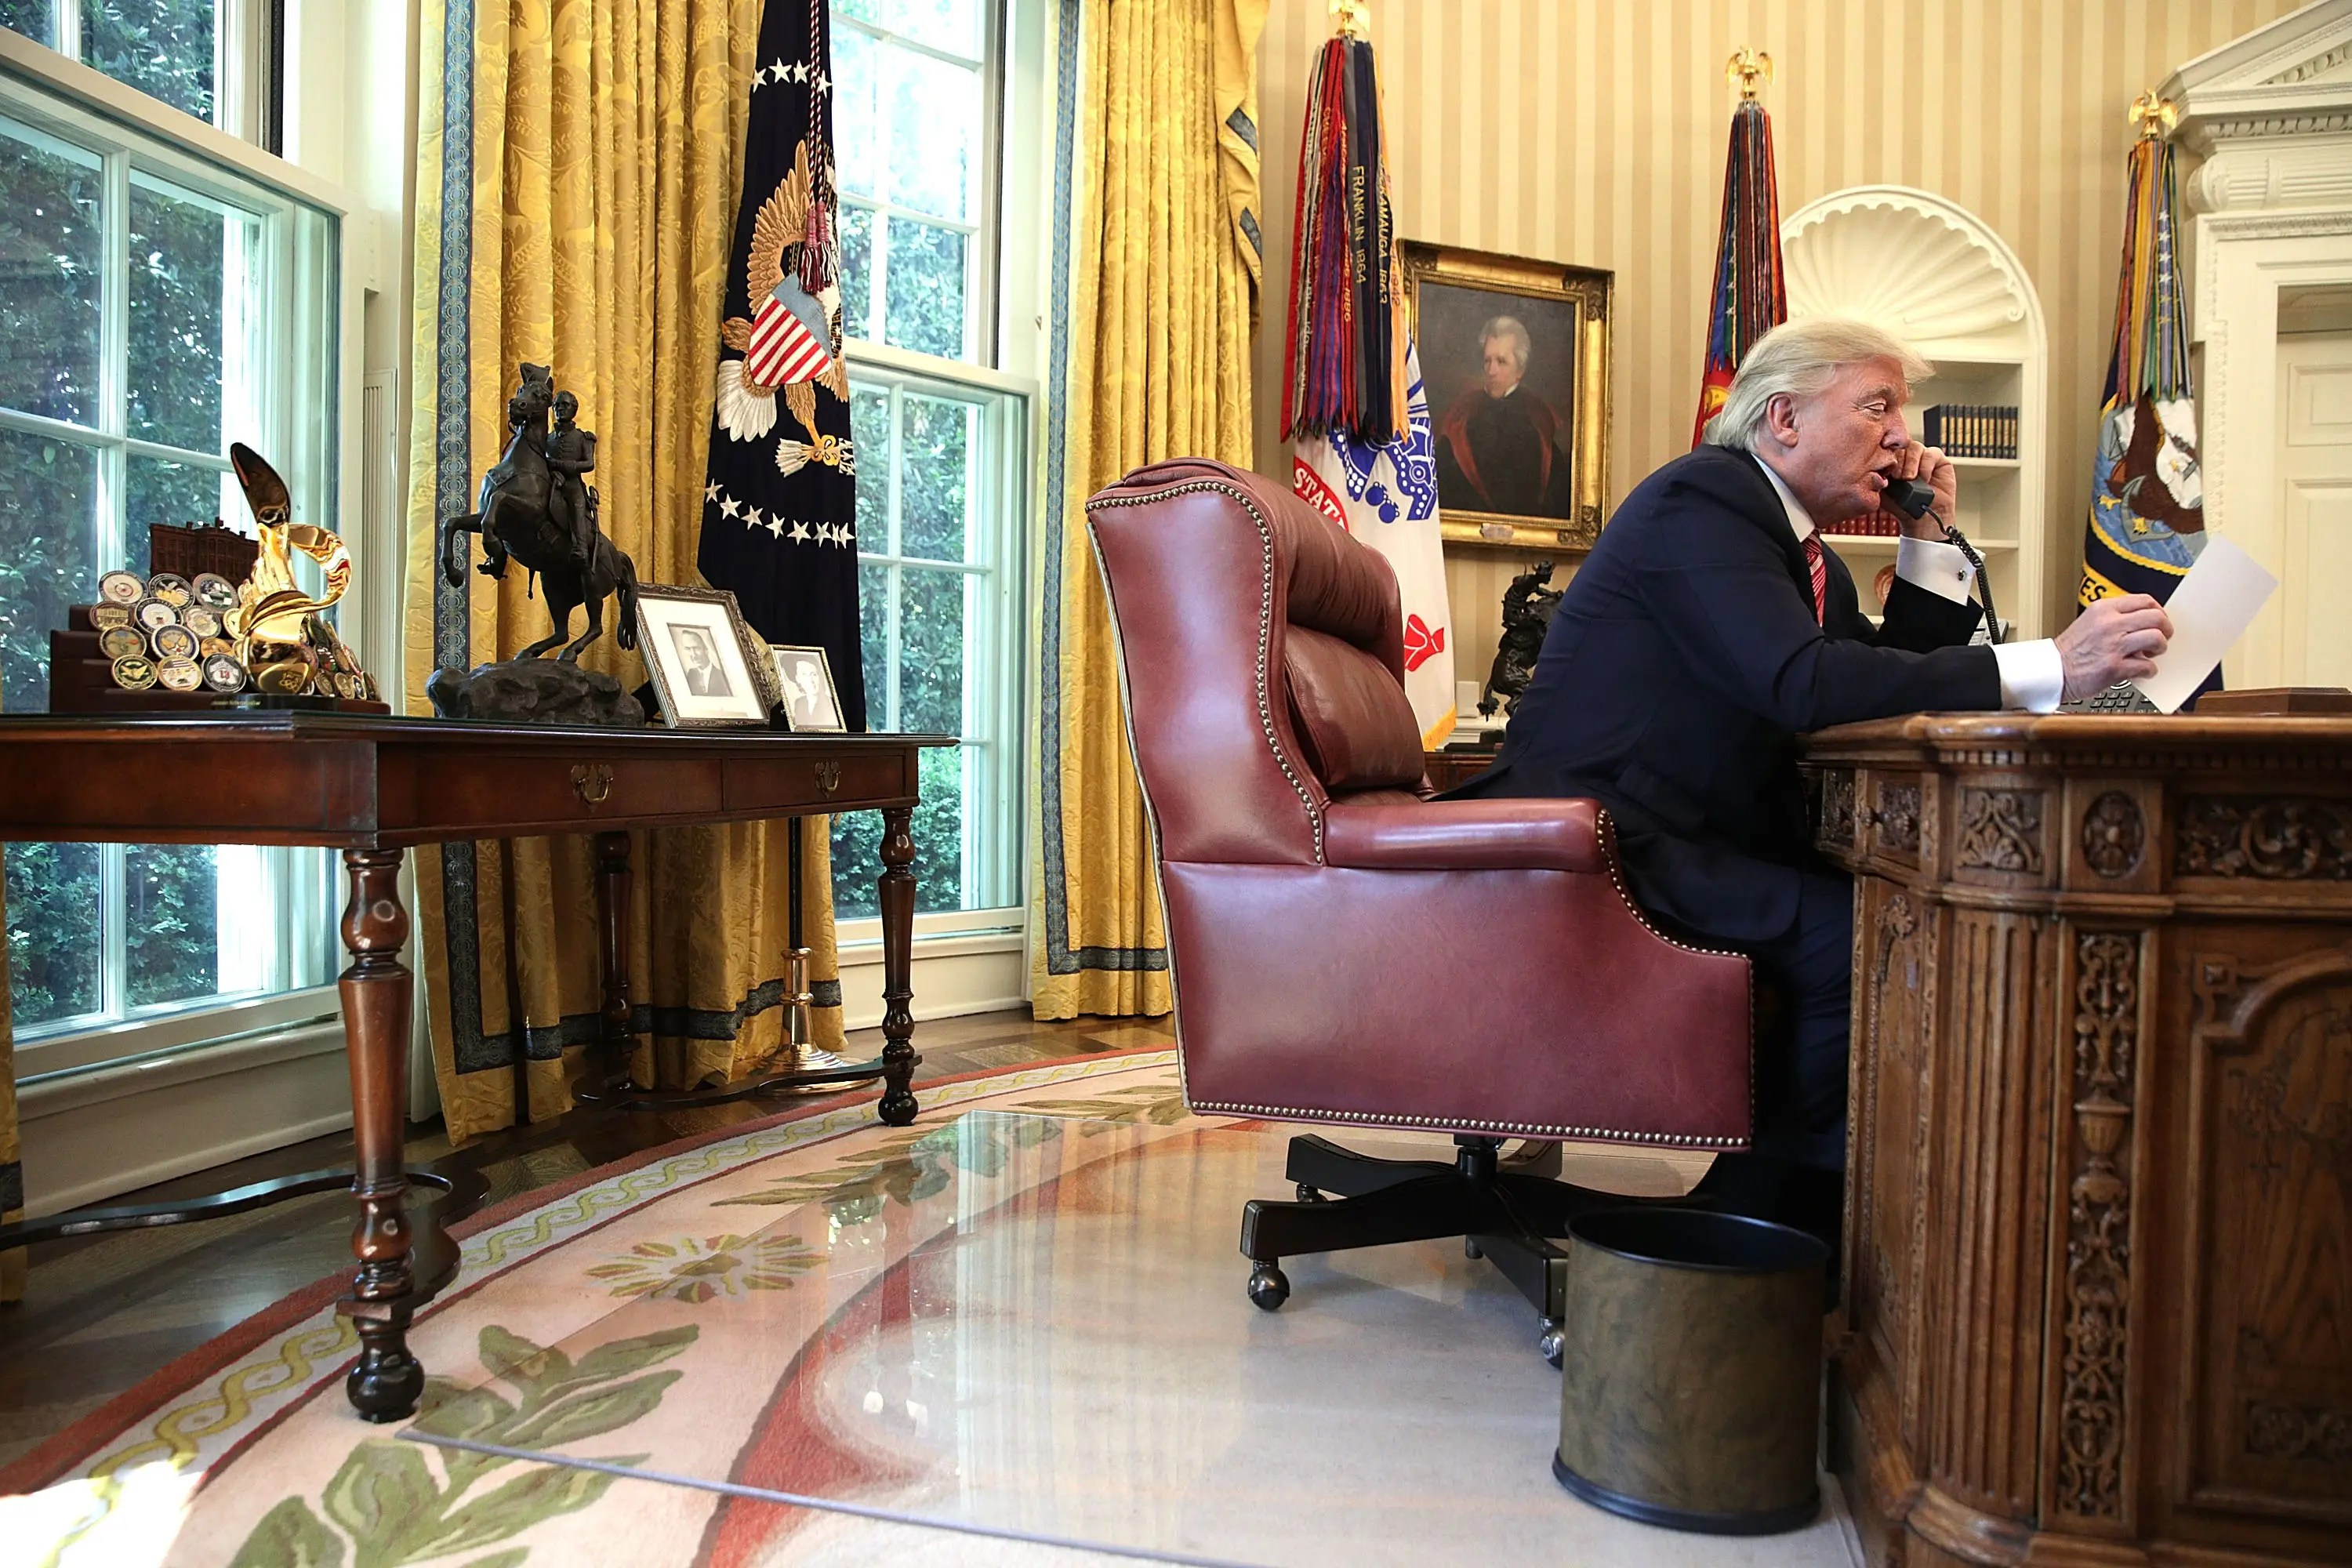 oval office chair posture yoga north korea does not want peace talks it wants to bully